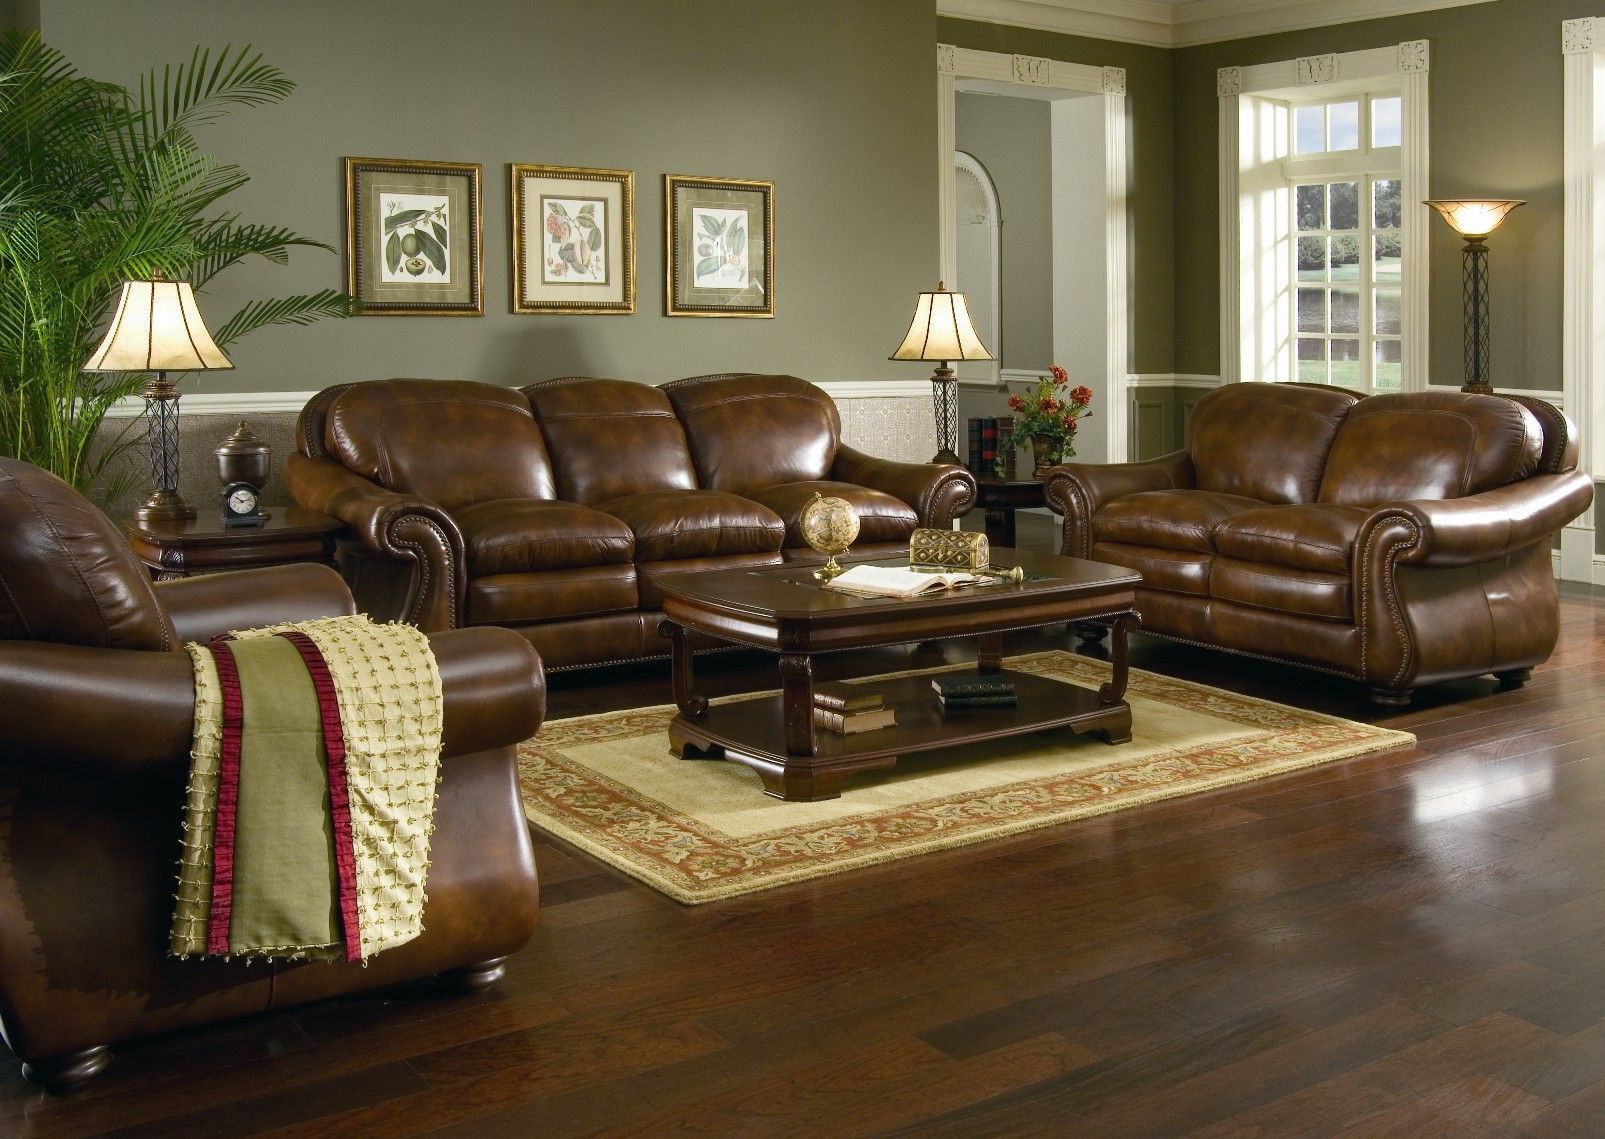 paint ideas living room brown furniture   Colors of Living Room Leather  Sofa   Minimalist Home Decor Design Ideas. Brown leather sofa set for living room with dark hardwood floors